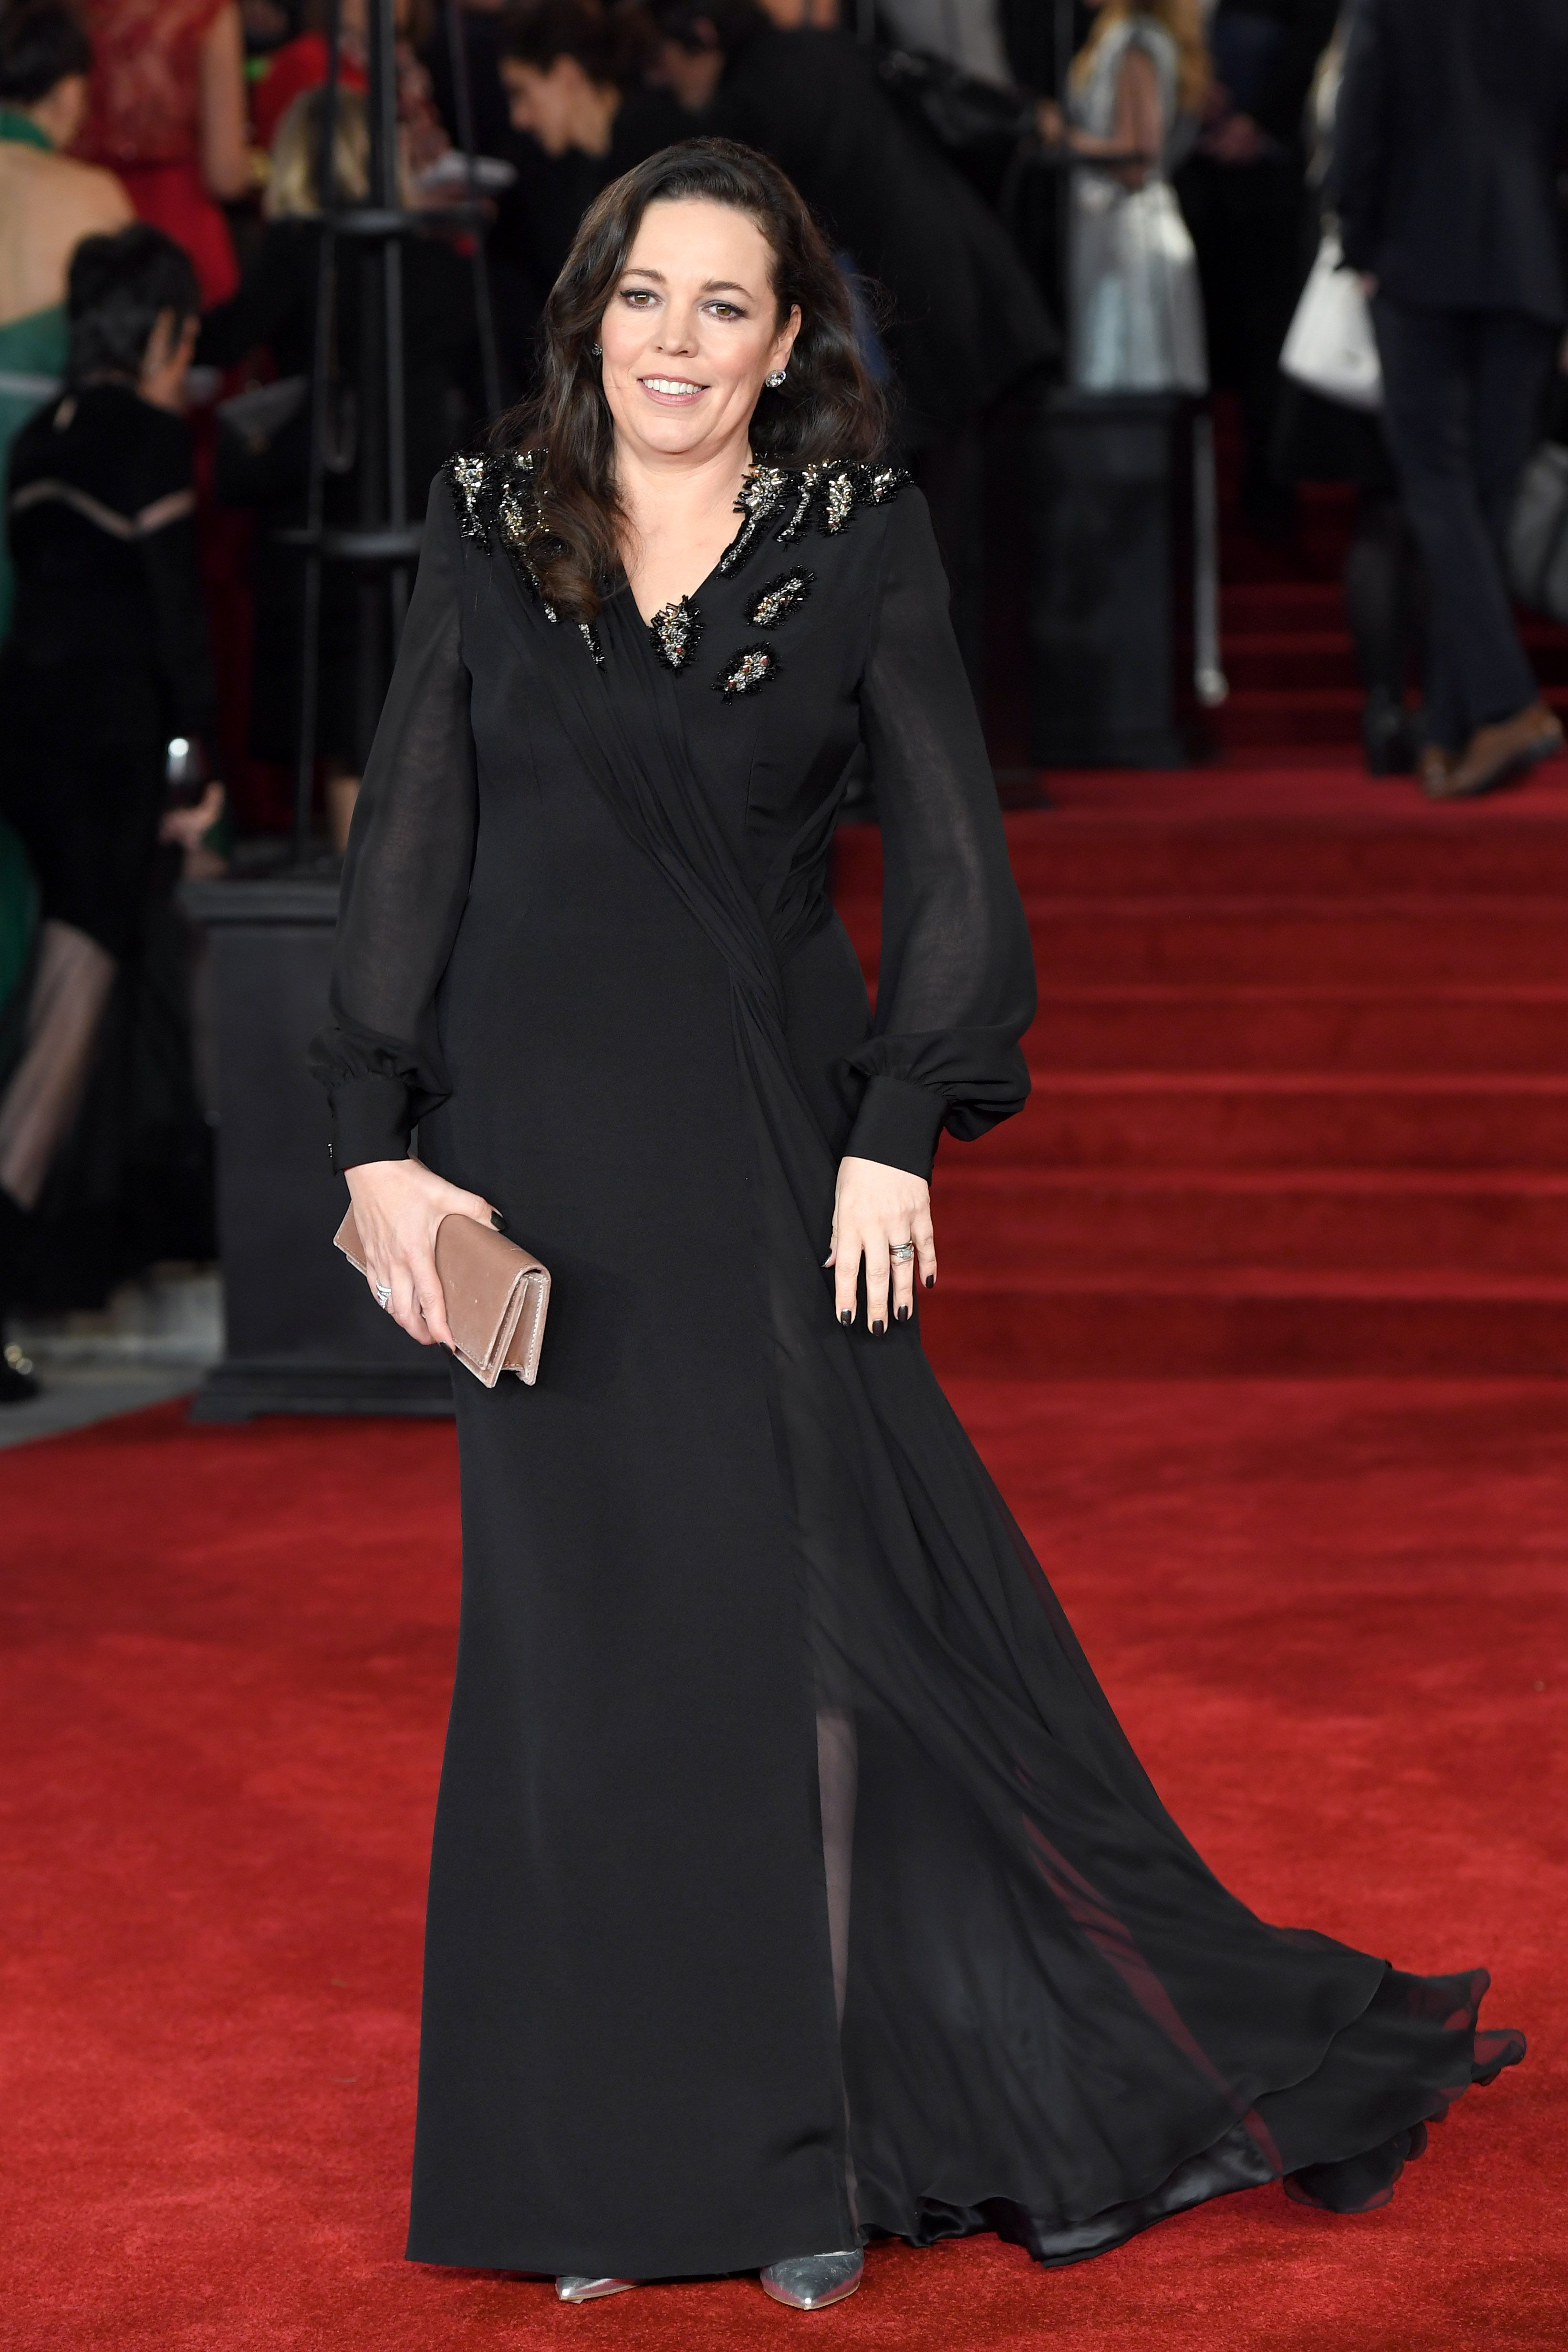 The actress looked elegant in a black wrap dress with sequin details for the premiere of Murder on the Orient Express at Royal Albert Hall. Olivia paired the flowing gown with a blush clutch and jewelry by DeBeers .